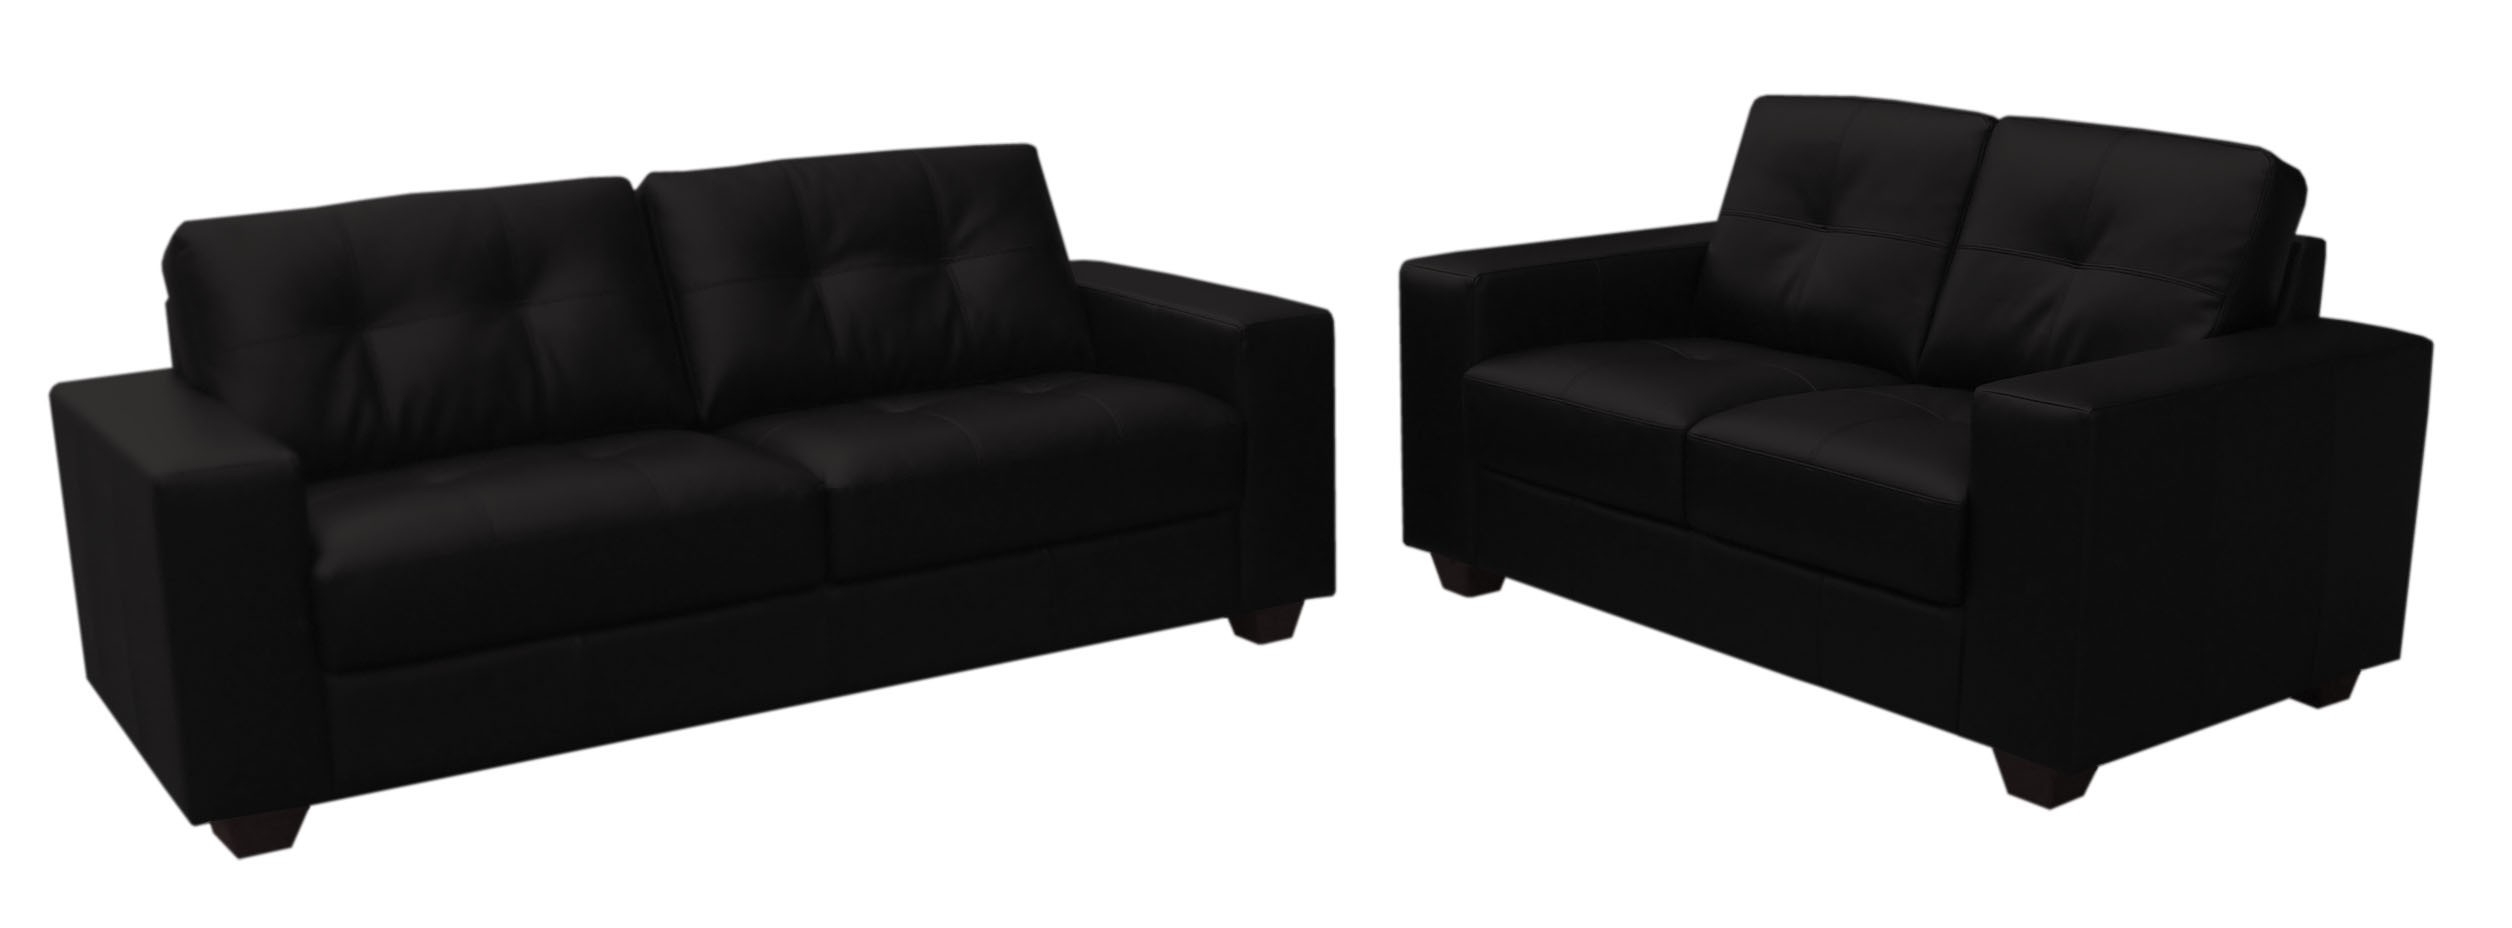 Well Known Faux Black Leather Sofa Two Piece Suite 3+2 Seater – Furniture With Regard To Black 2 Seater Sofas (View 3 of 15)